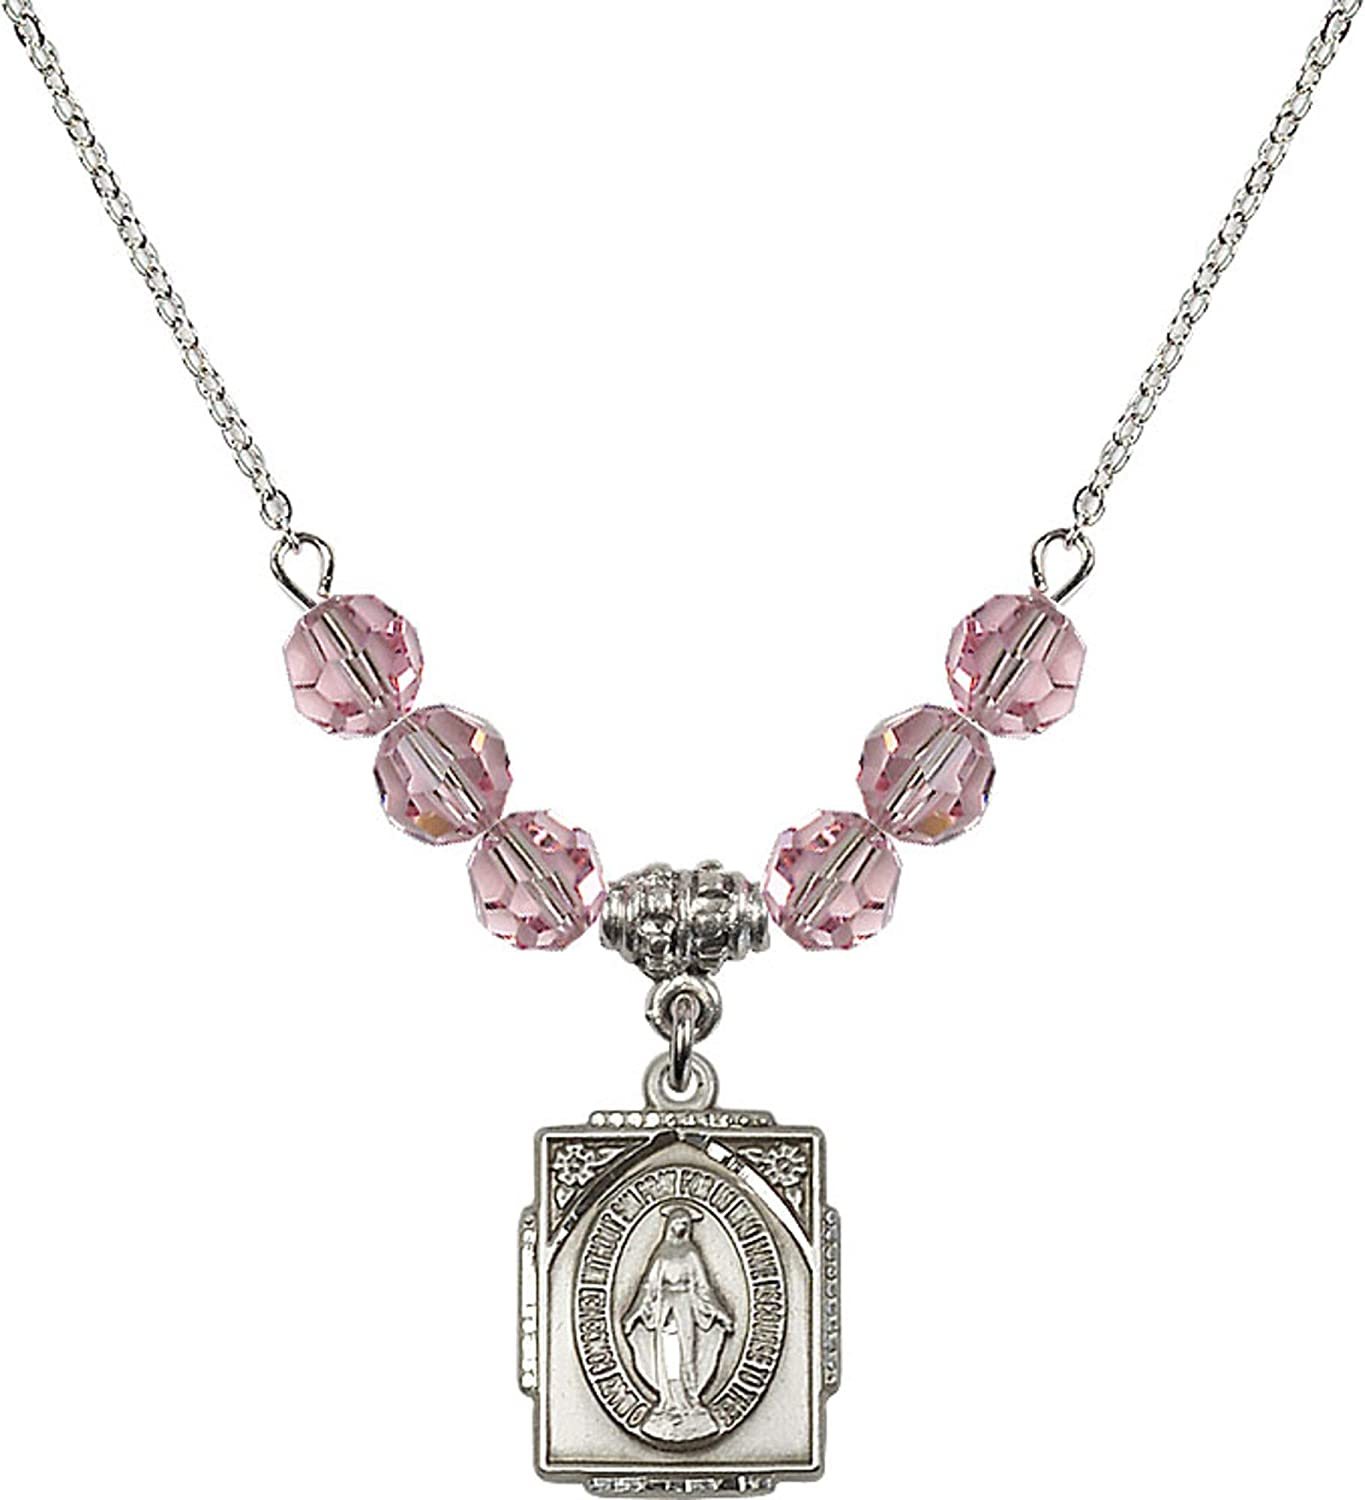 Bonyak Jewelry 18 Inch Rhodium Plated Necklace w// 6mm Light Rose Pink October Birth Month Stone Beads and Miraculous Charm